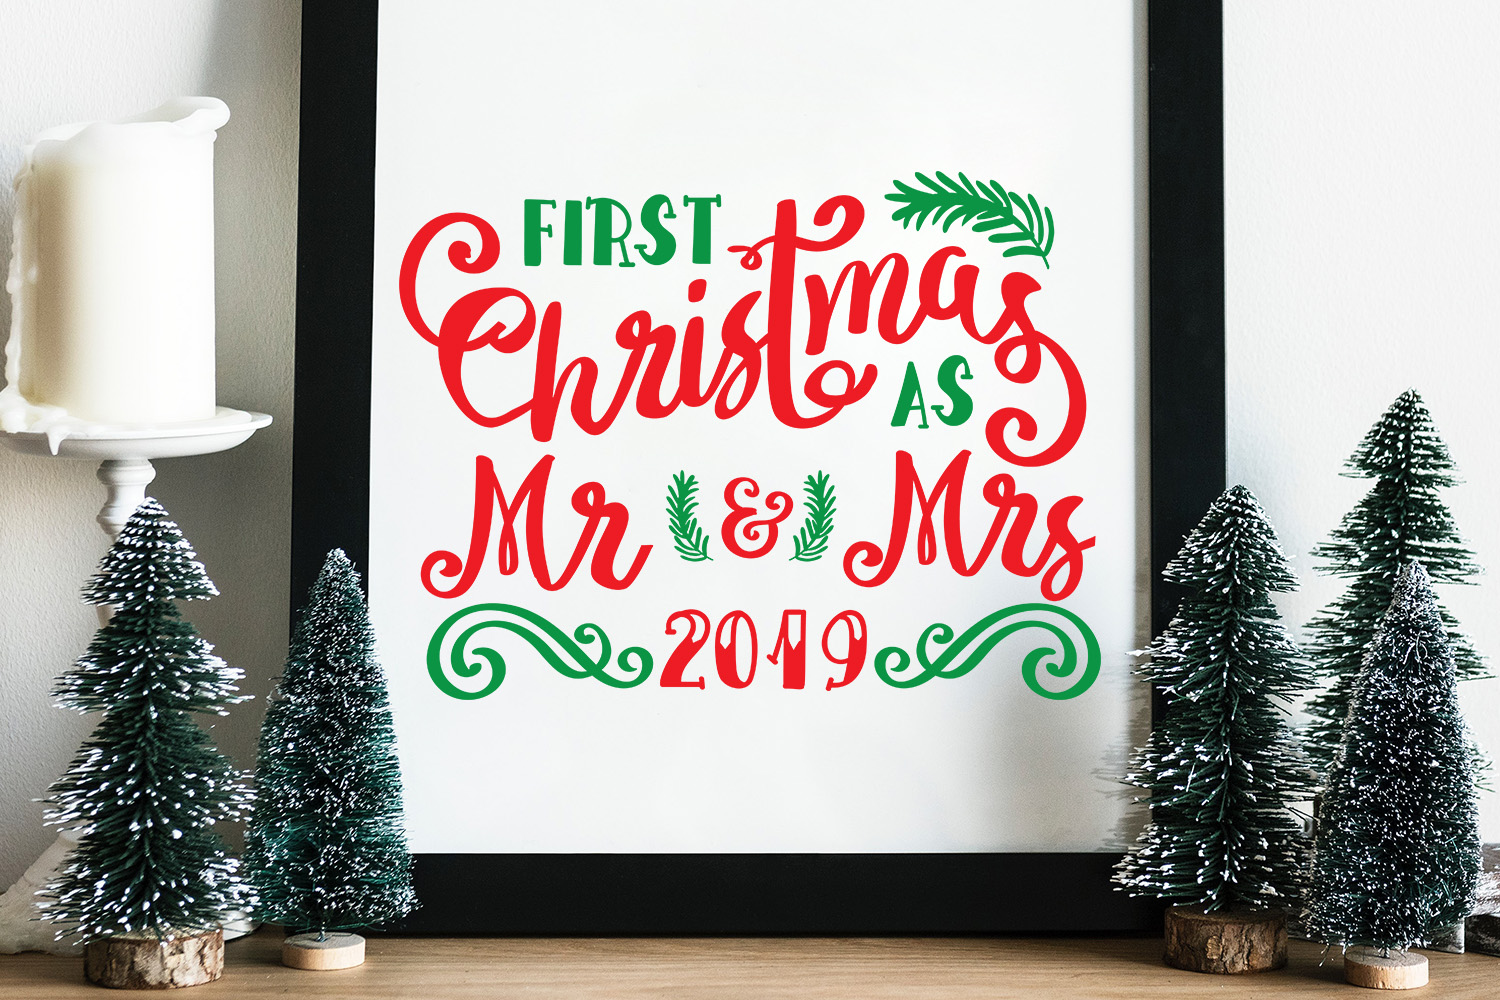 Our first Christmas as Mr and Mrs 2019 example image 4